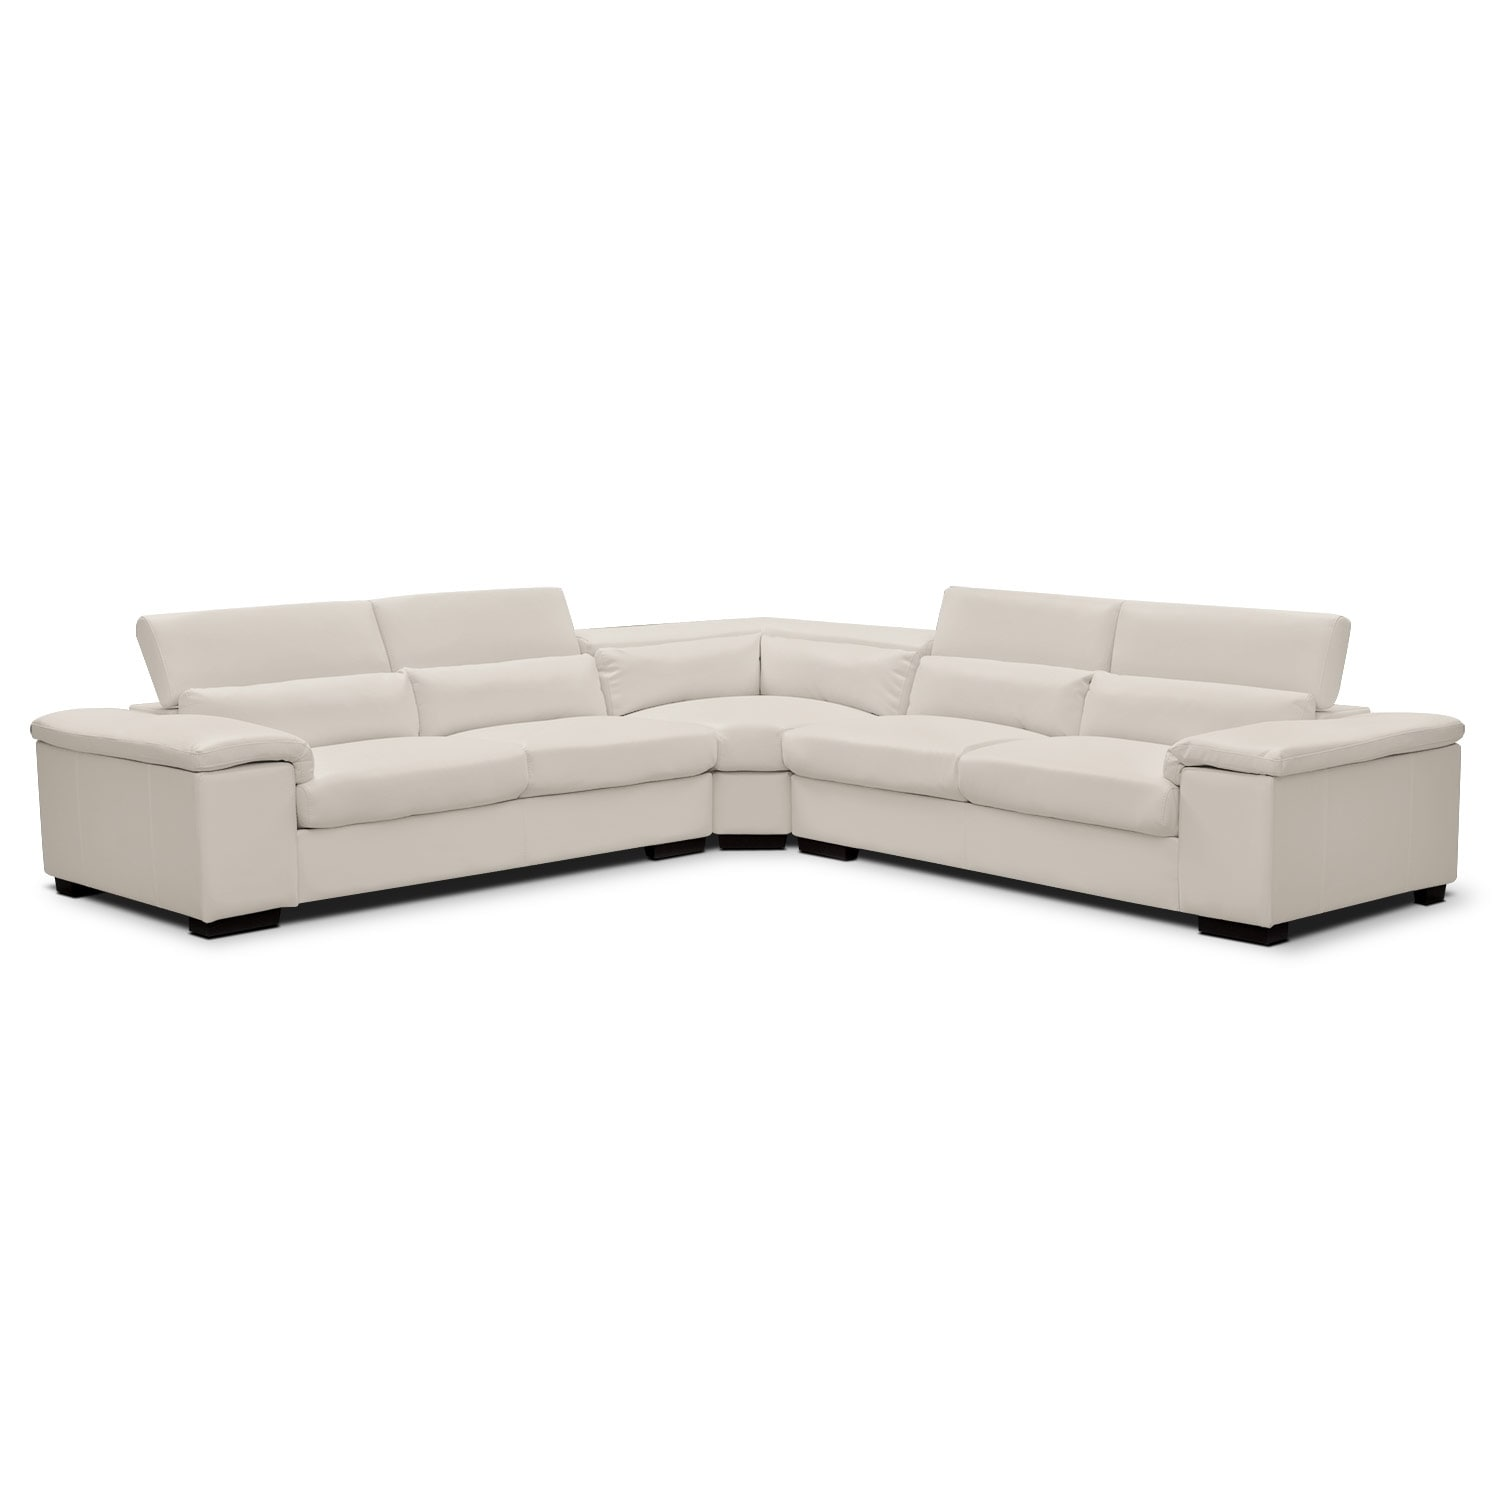 Living Room Furniture - Ventana 3 Pc. Sectional